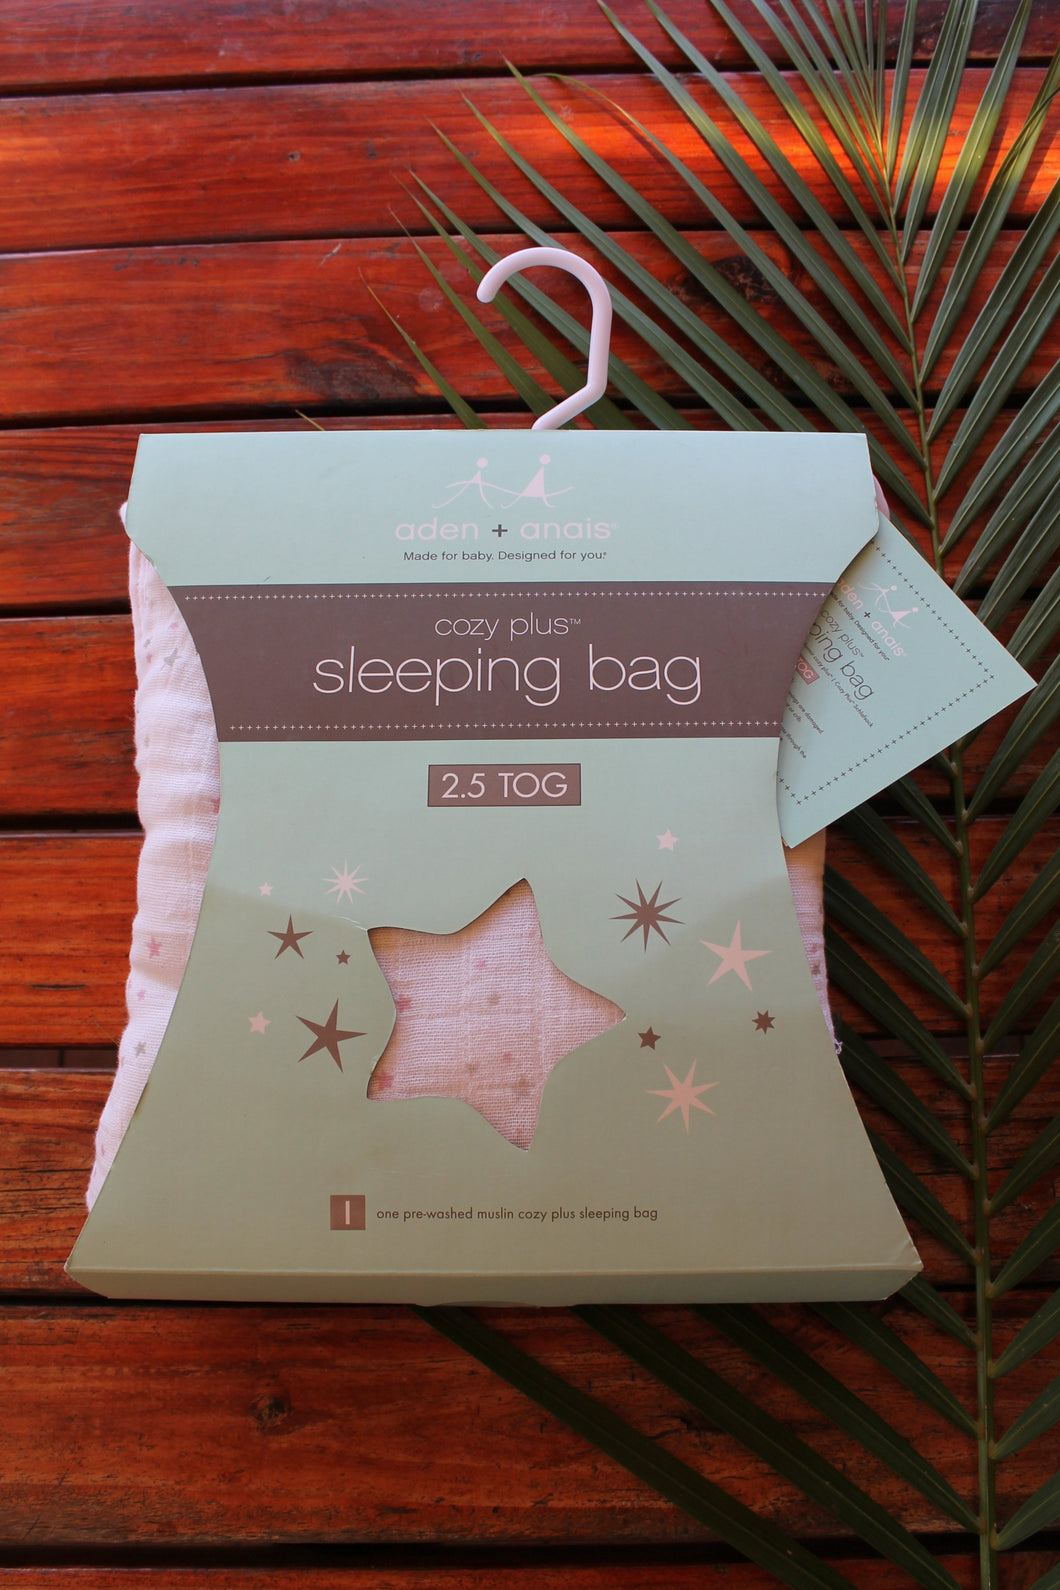 Aden and Anais Lovely Starburst Cozy Plus Sleeping Bag 2.5 TOG